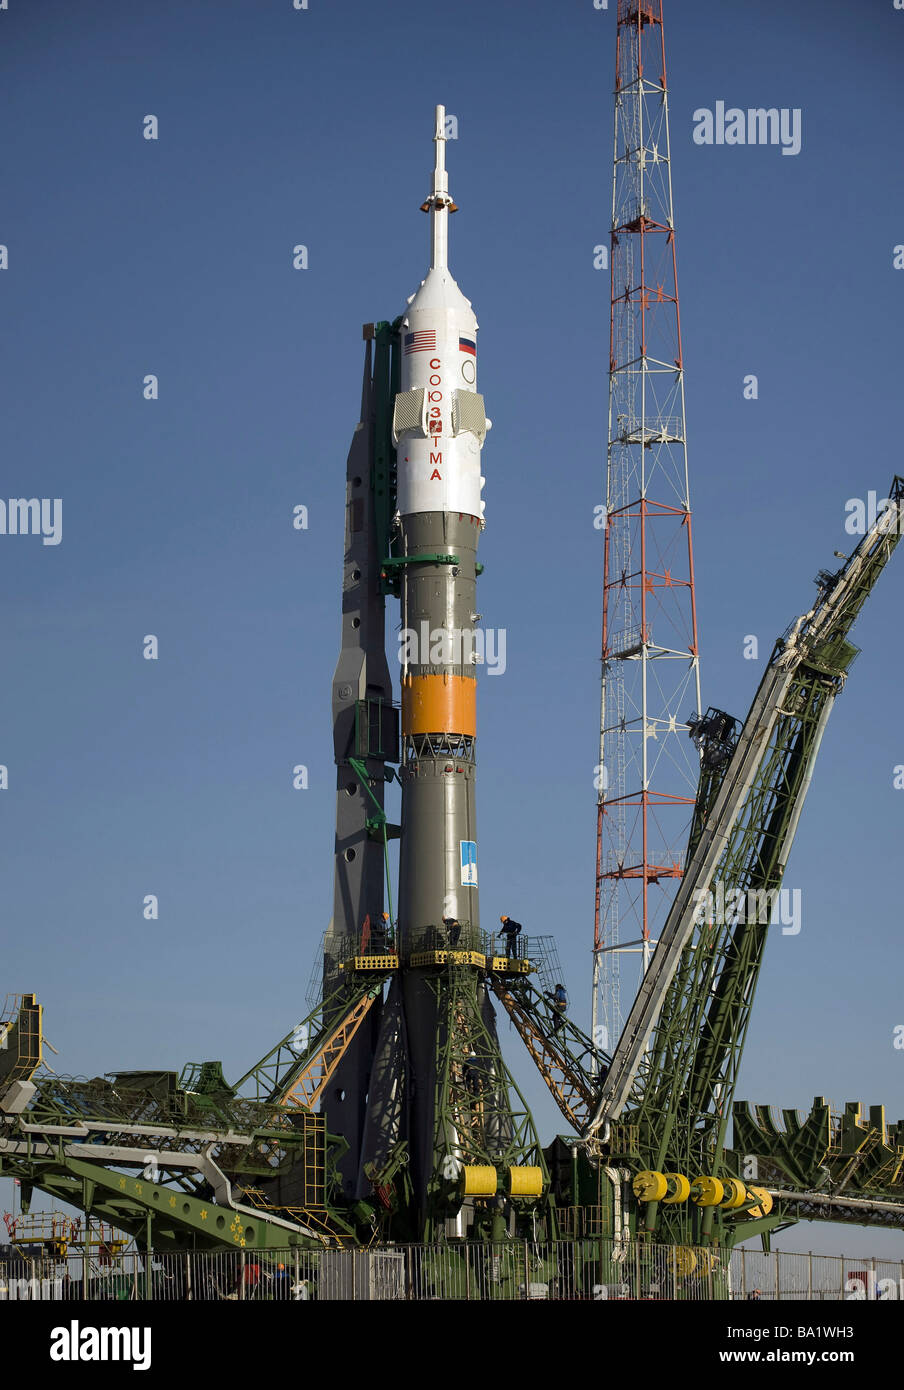 March 24, 2009 - The Soyuz rocket is erected into position at the launch pad at the Baikonur Cosmodrome in Kazakhstan. - Stock Image